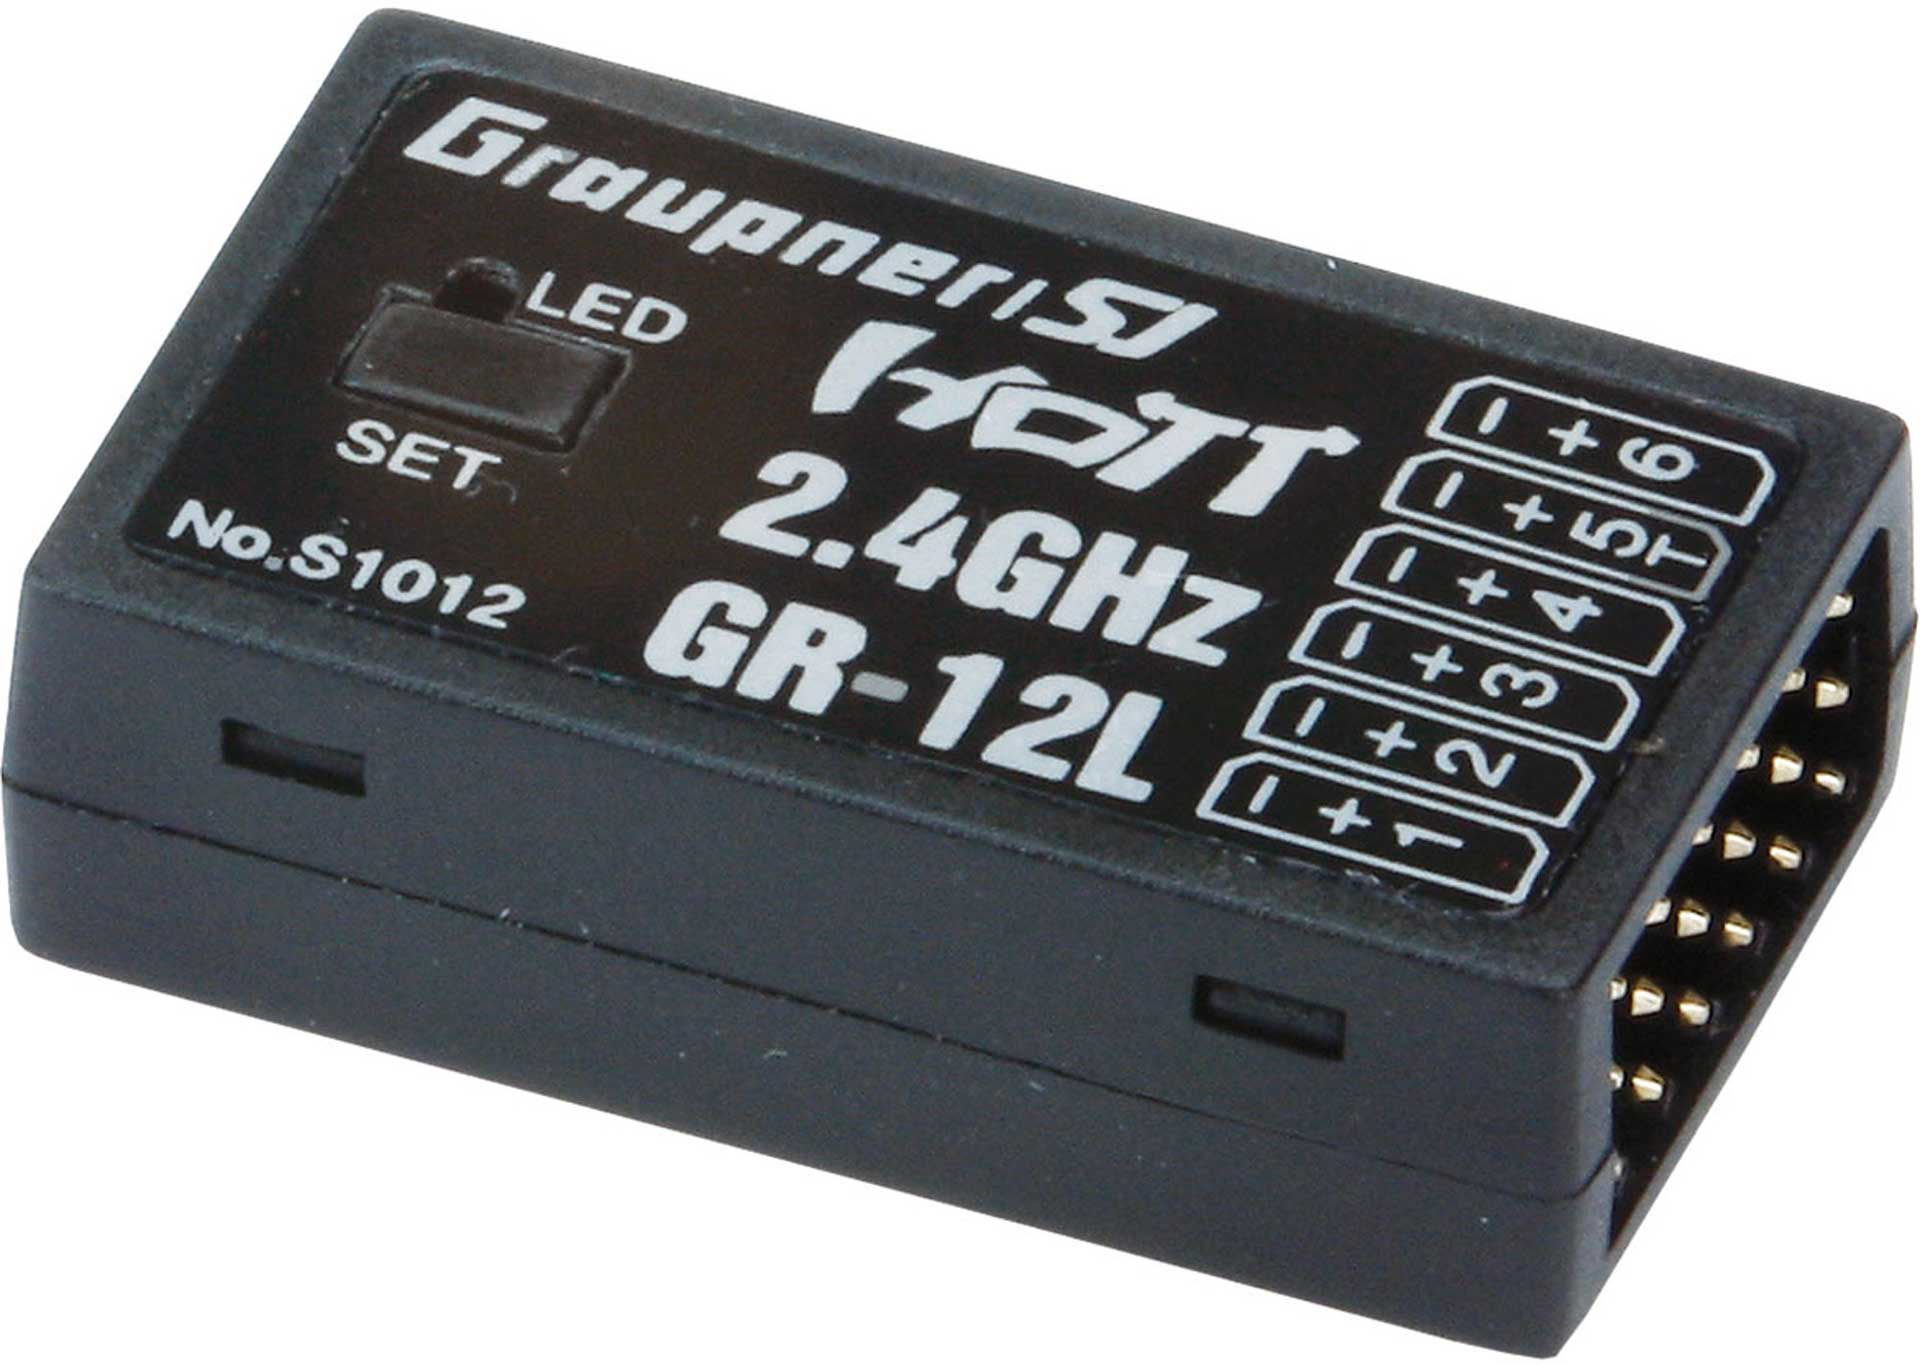 GRAUPNER GR-12L 2.4GHZ HOT 6K RECEIVER WITHOUT CHANNEL MAPPING, SERVO REVERSE..